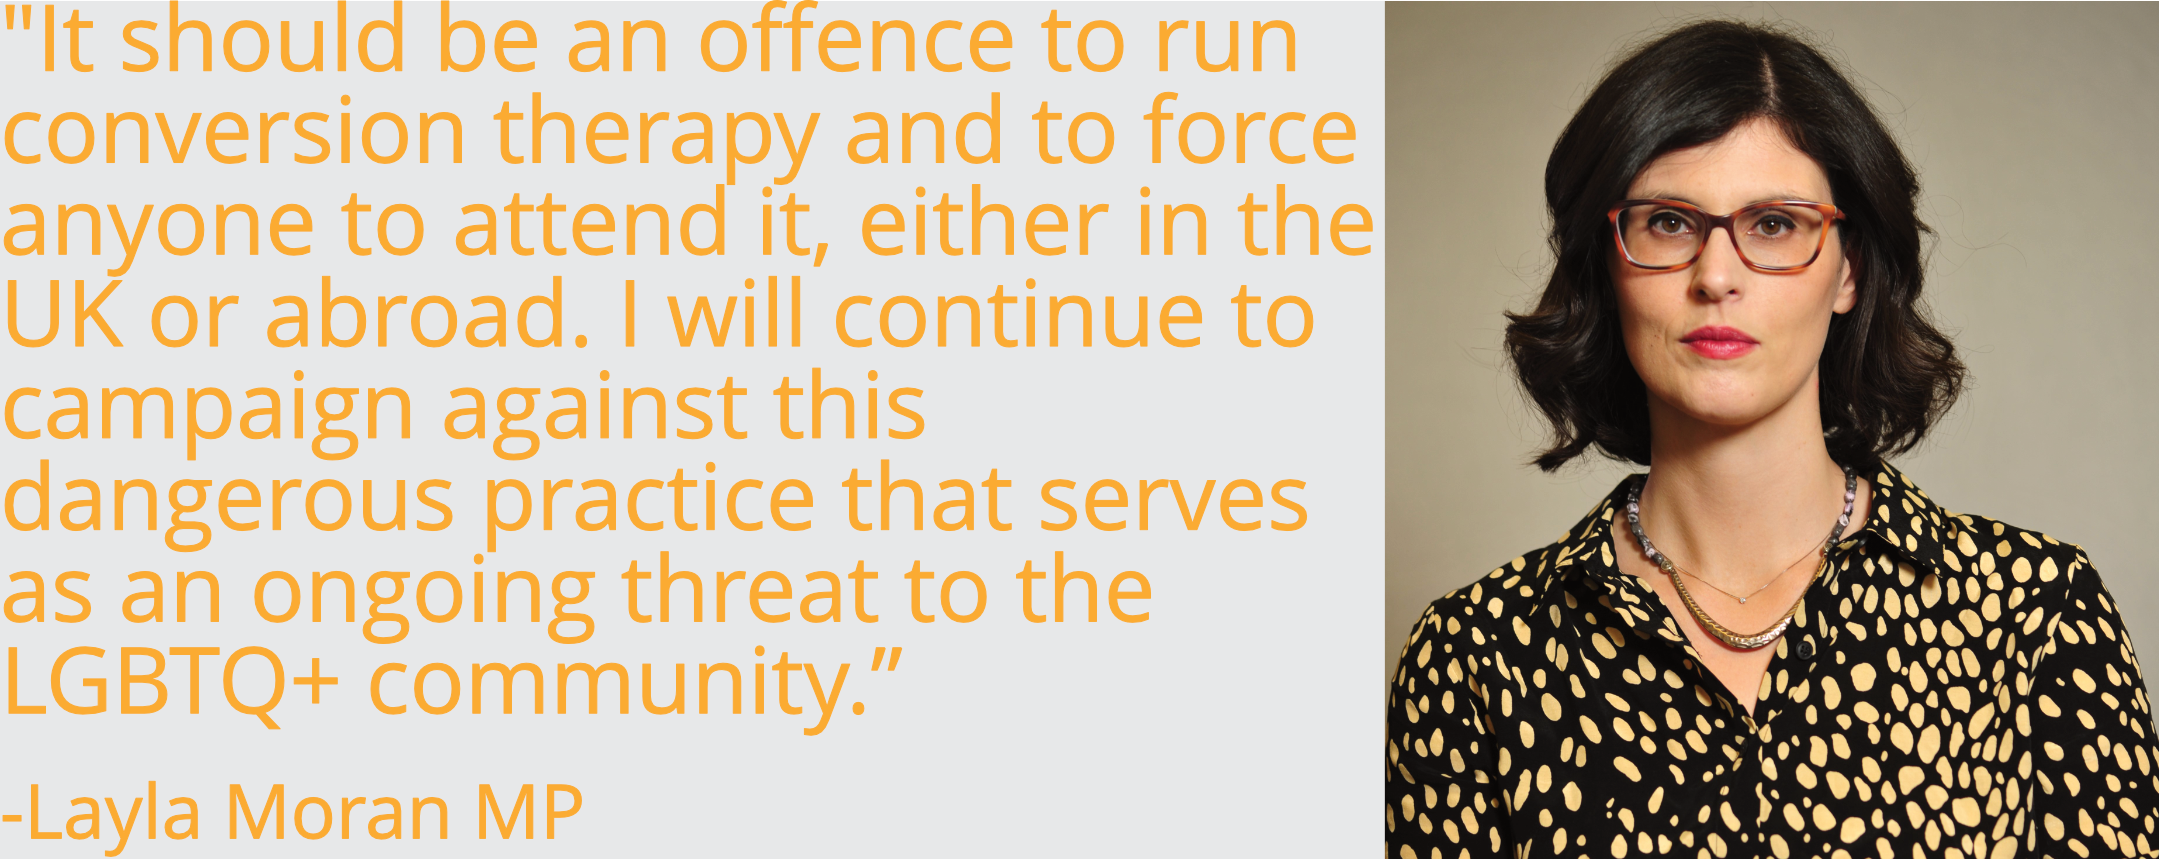 It should be an offence to run conversion therapy and to force anyone to attend it, either in the UK or abroad. I will continue to campaign against this dangerous practice that serves as an ongoing threat to the LGBTQ+ community.